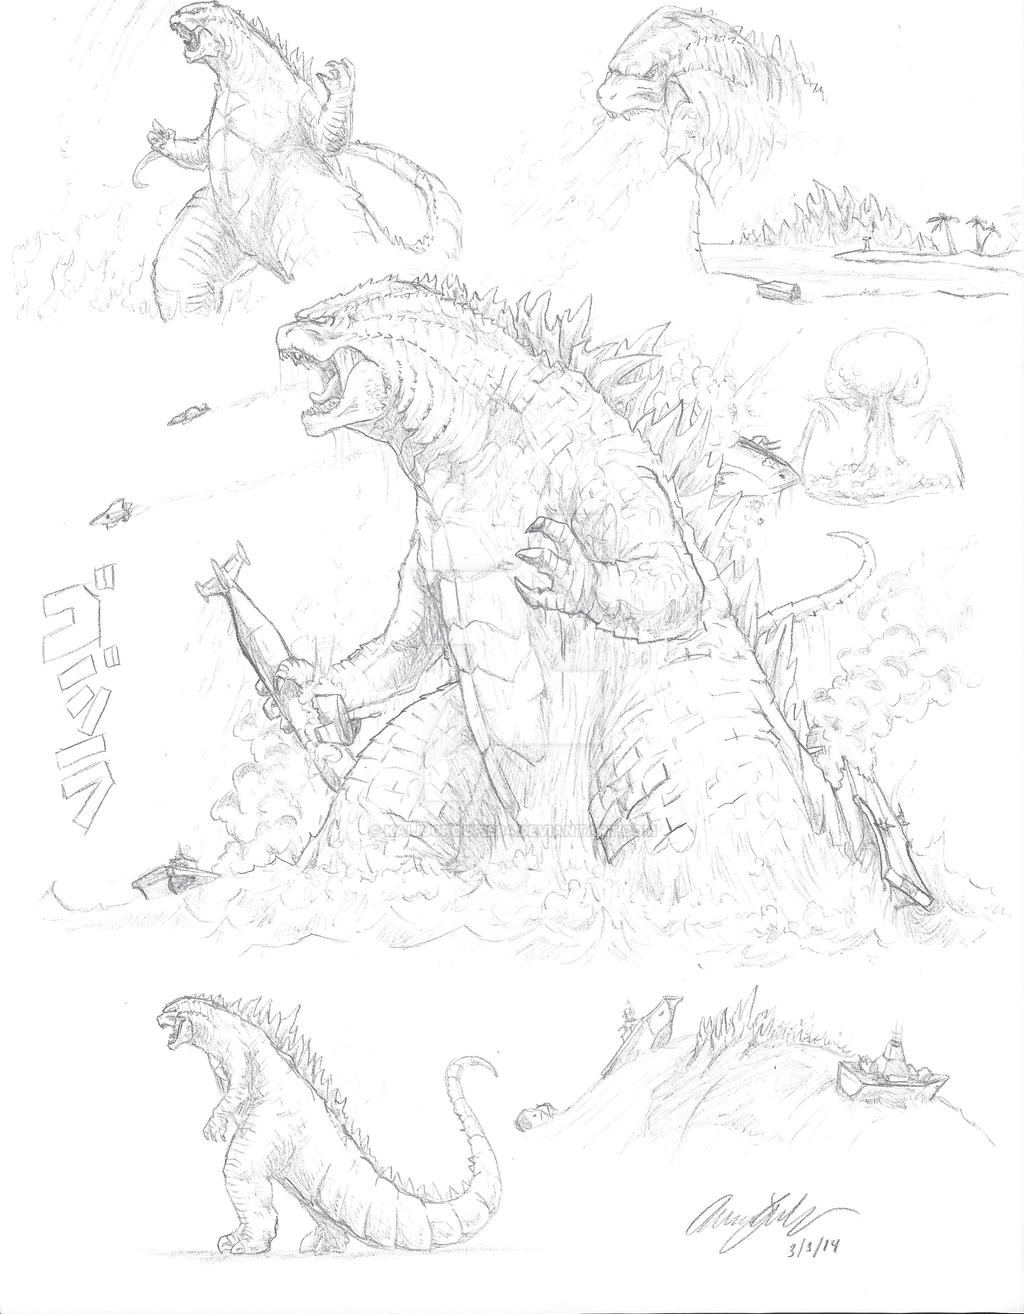 Godzilla 2014 Doodles (At Request) by kaijugroupie84